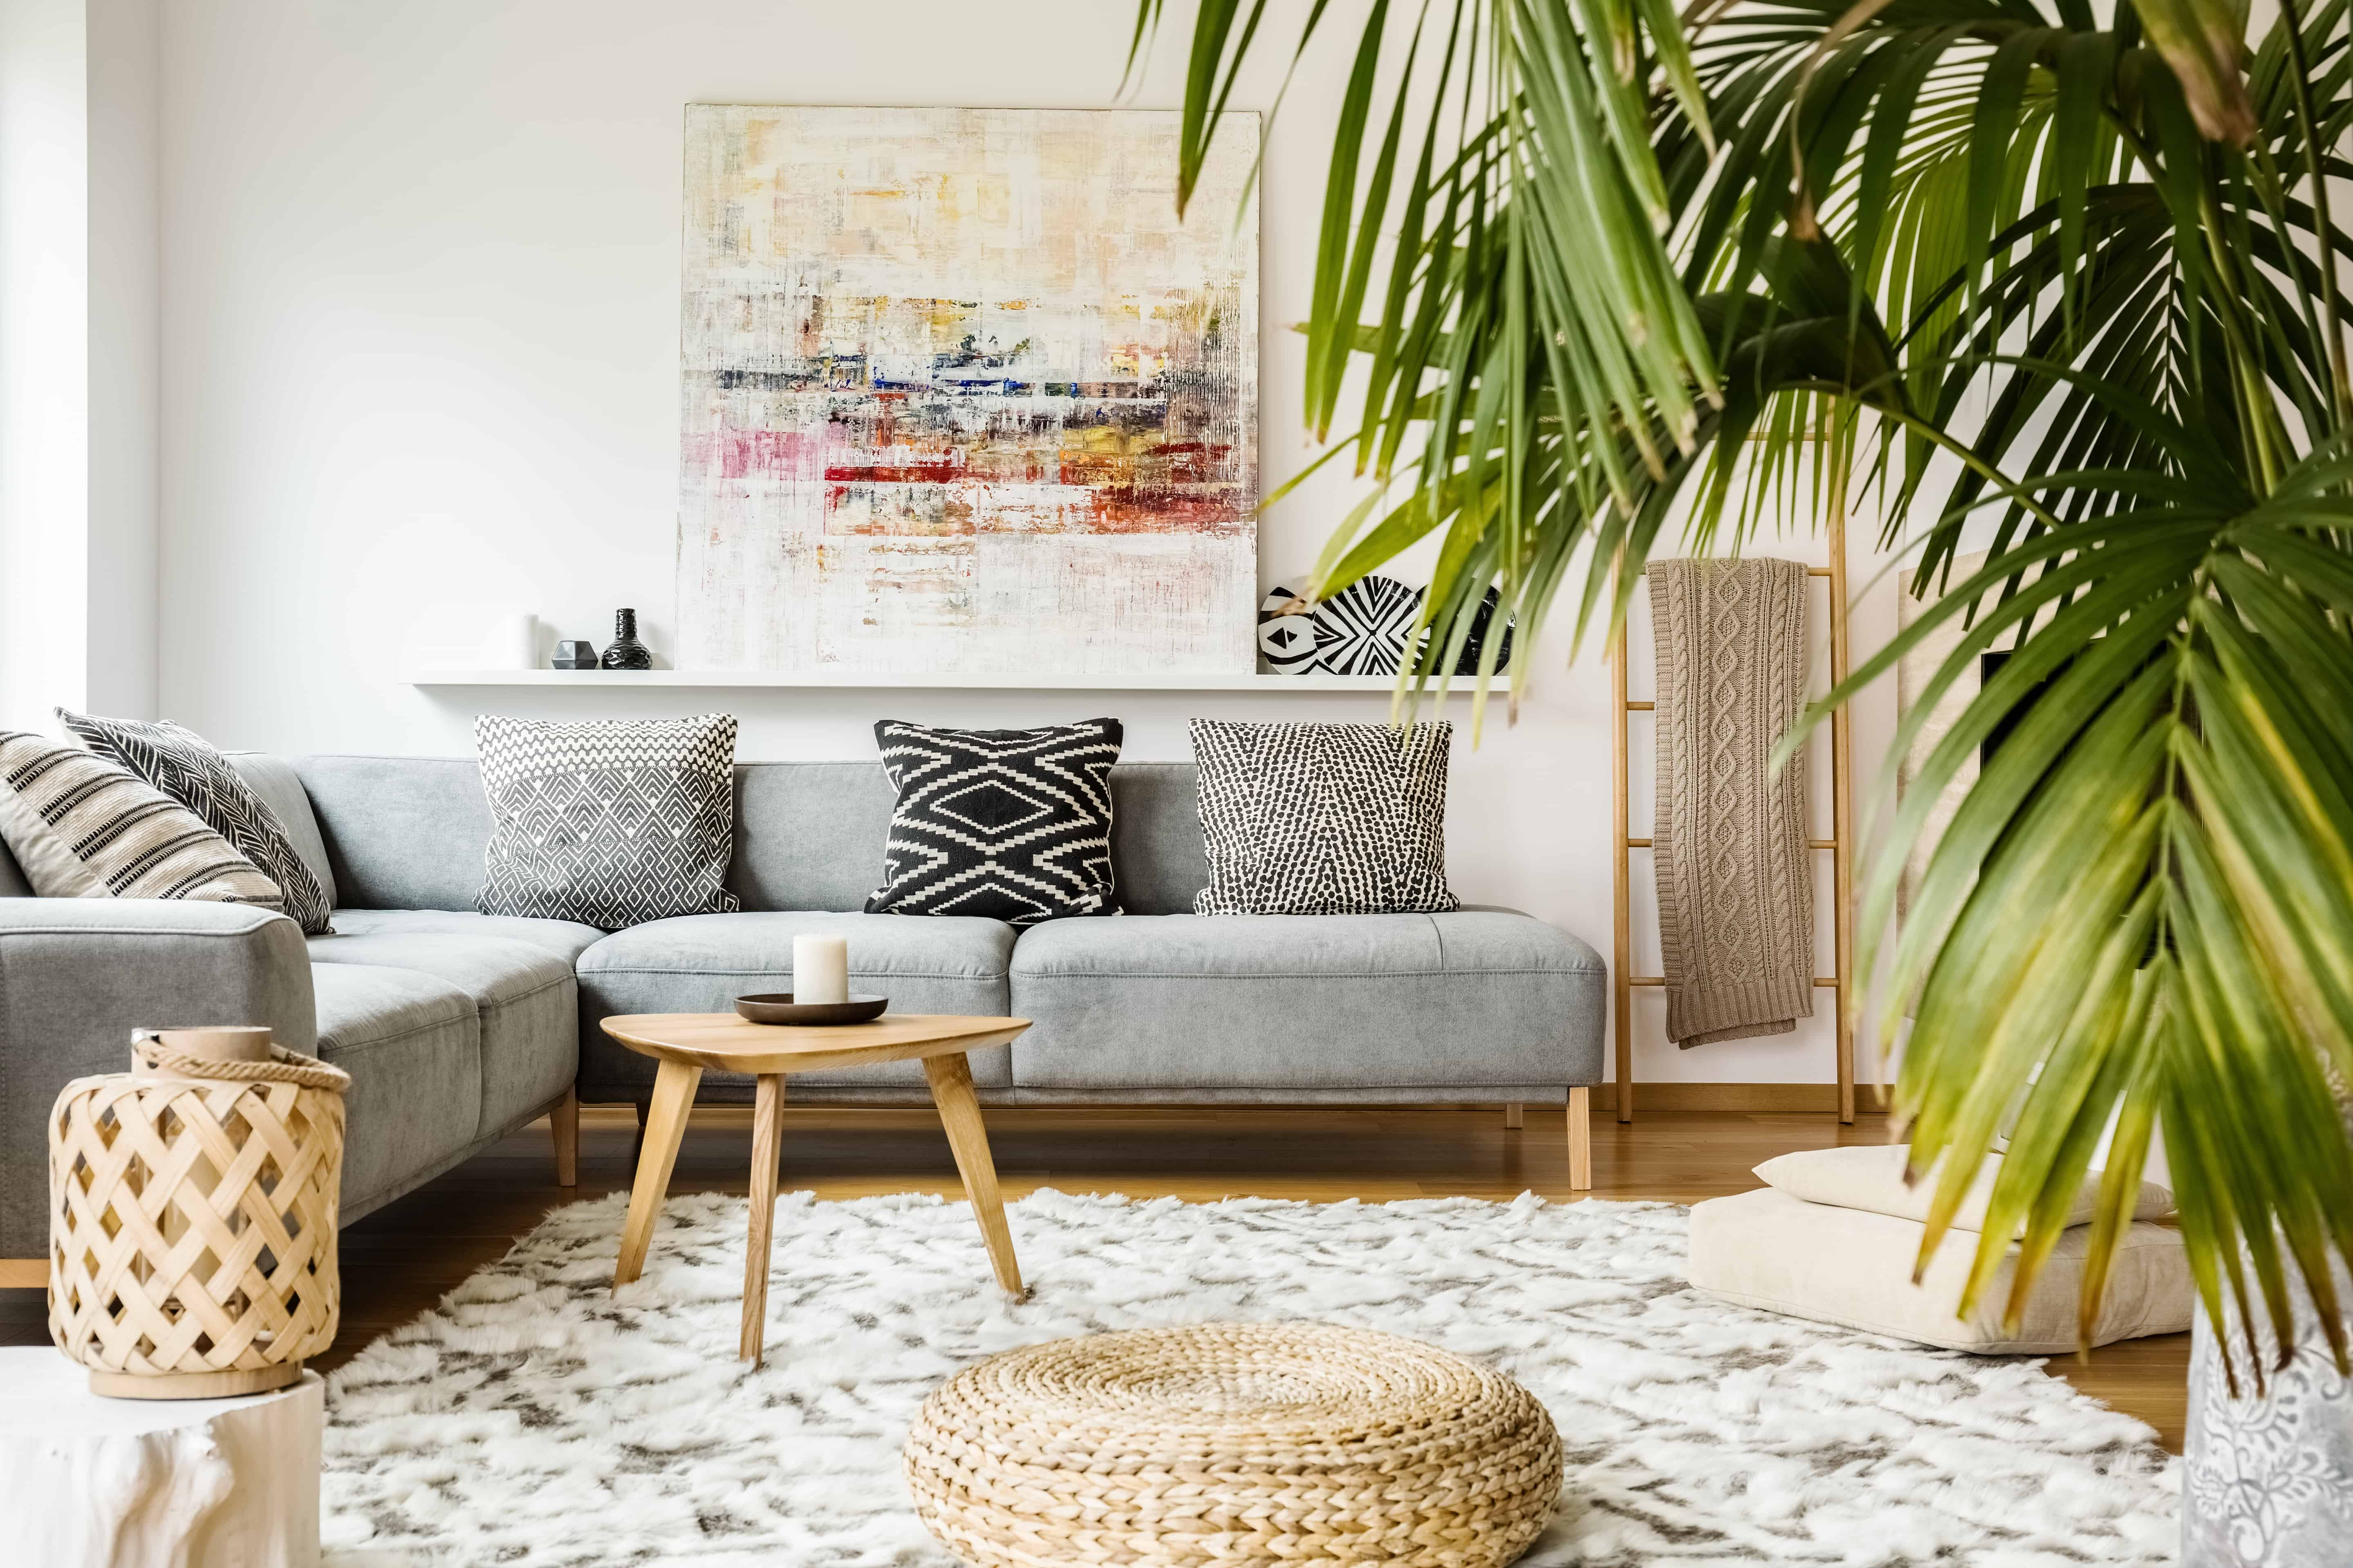 Are you wondering what happened to your home? There are toys and bright colors everywhere, and your friends are starting to wonder if you opened up a daycare. Reclaim your space today with these five genius tips from designers who know what it's like to live with kids. #kidfriendlydecor #kidfriendlydecorideas #kidfriendlyspaces #familyfriendlylivingroom #mommycribnotes